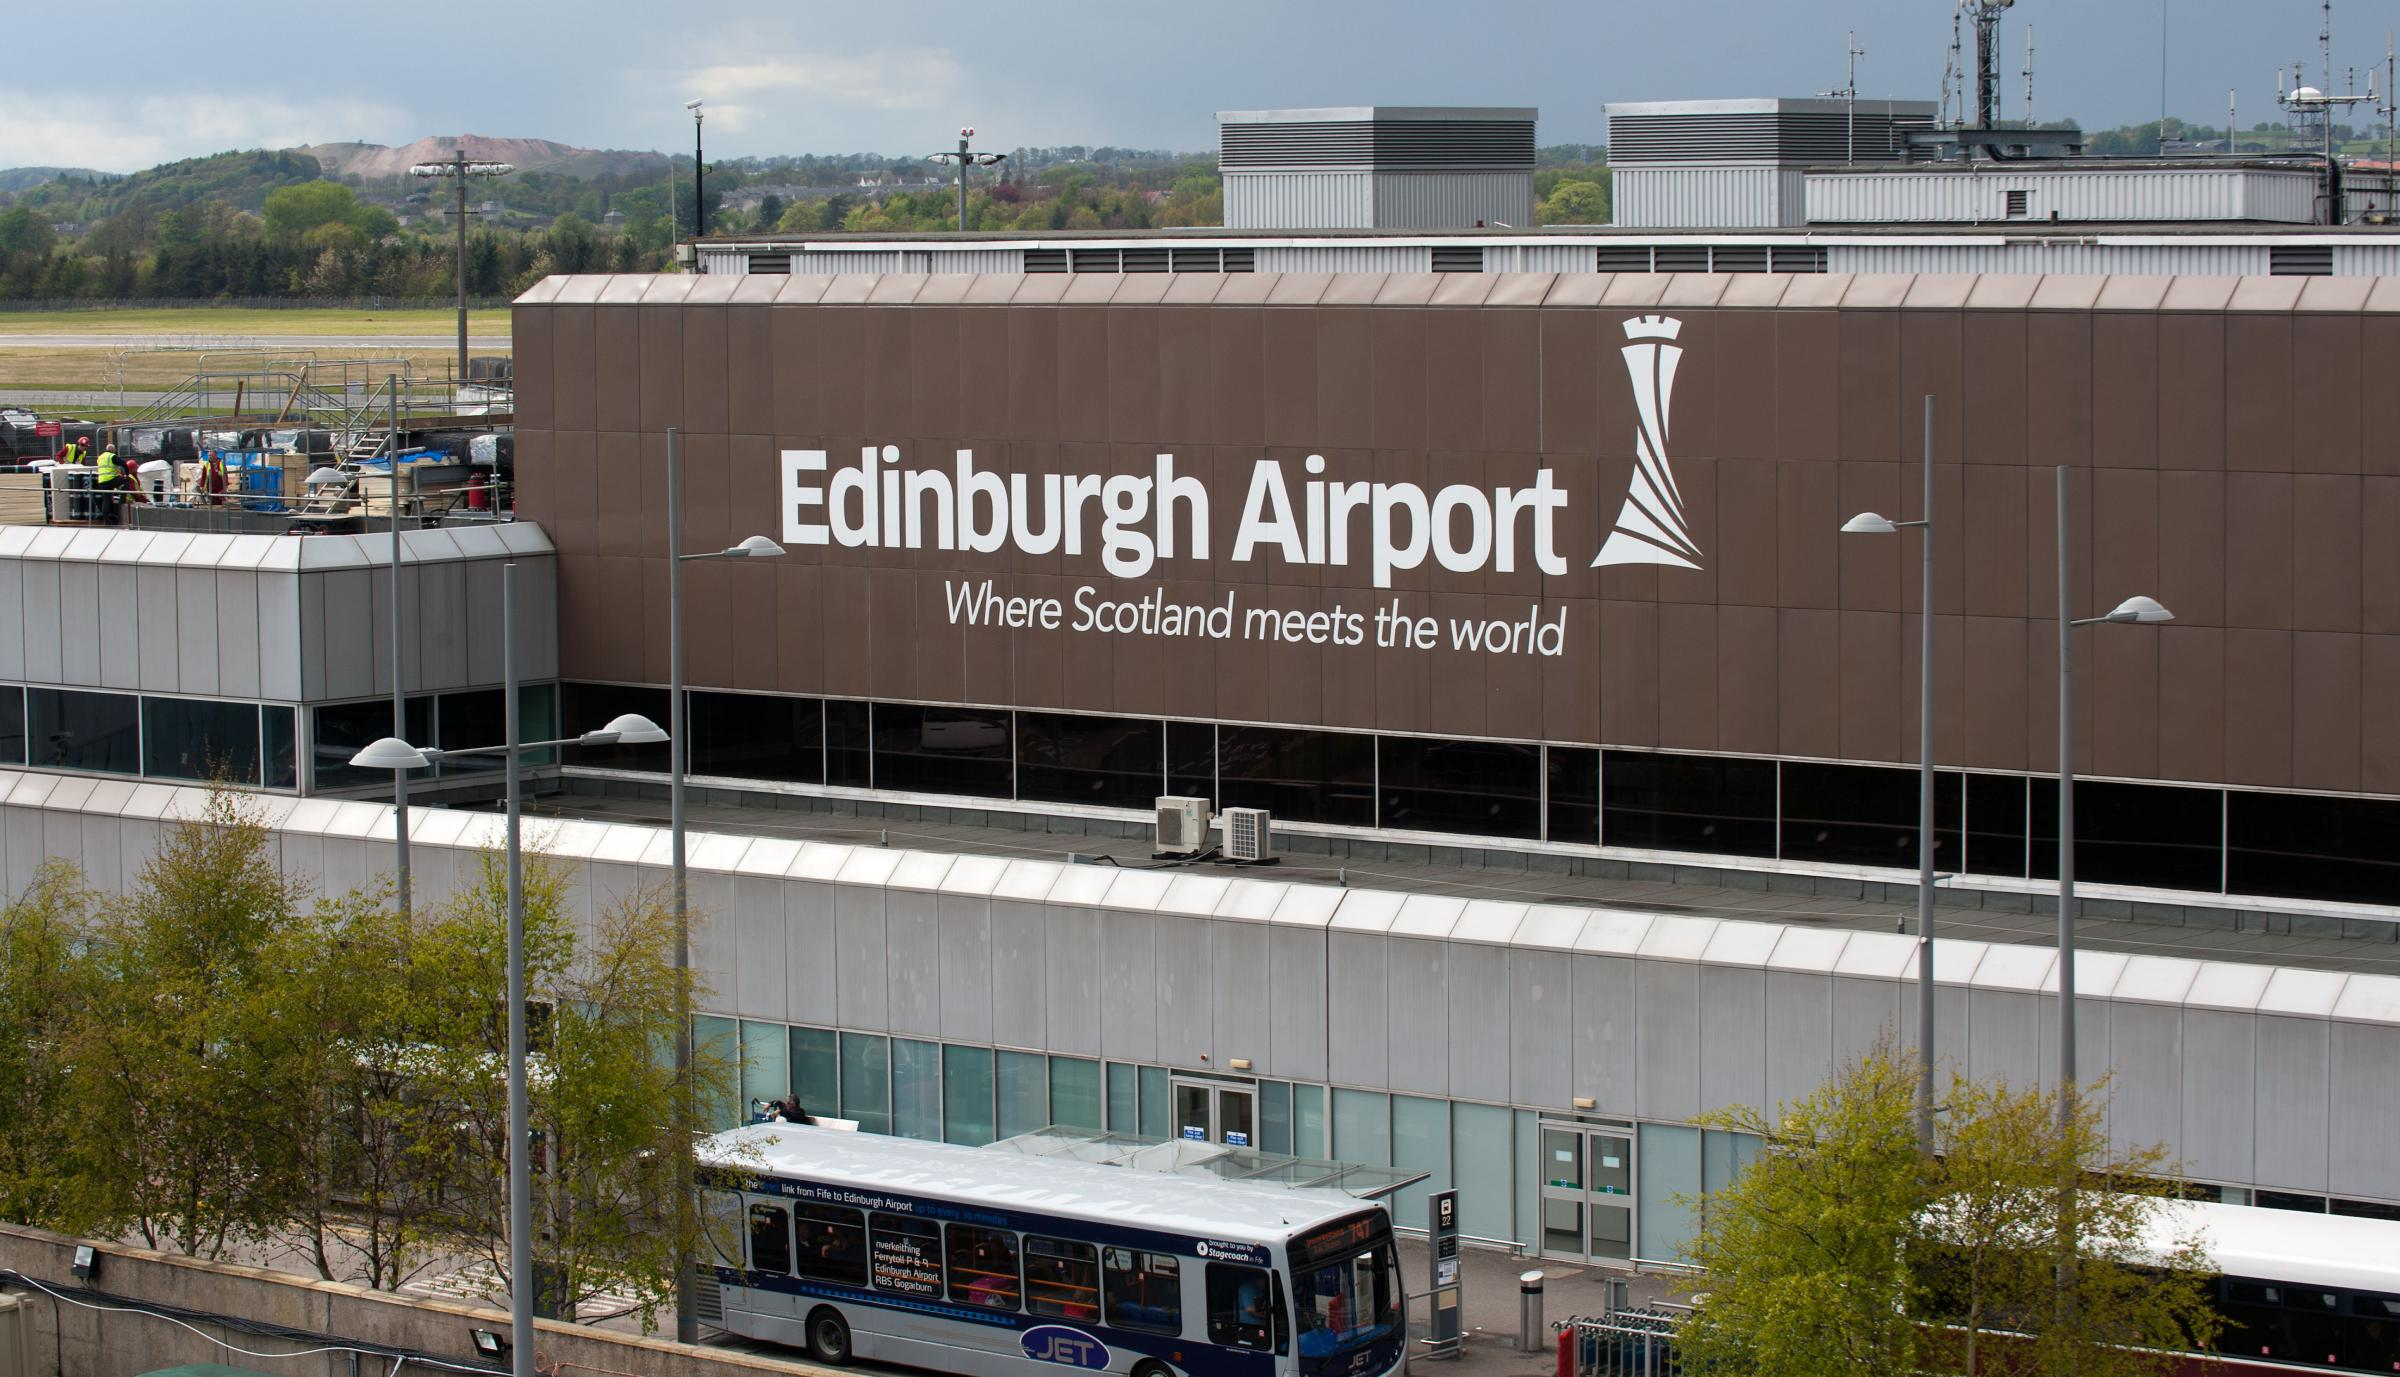 13 million passengers passed through Edinburgh airport in 2017